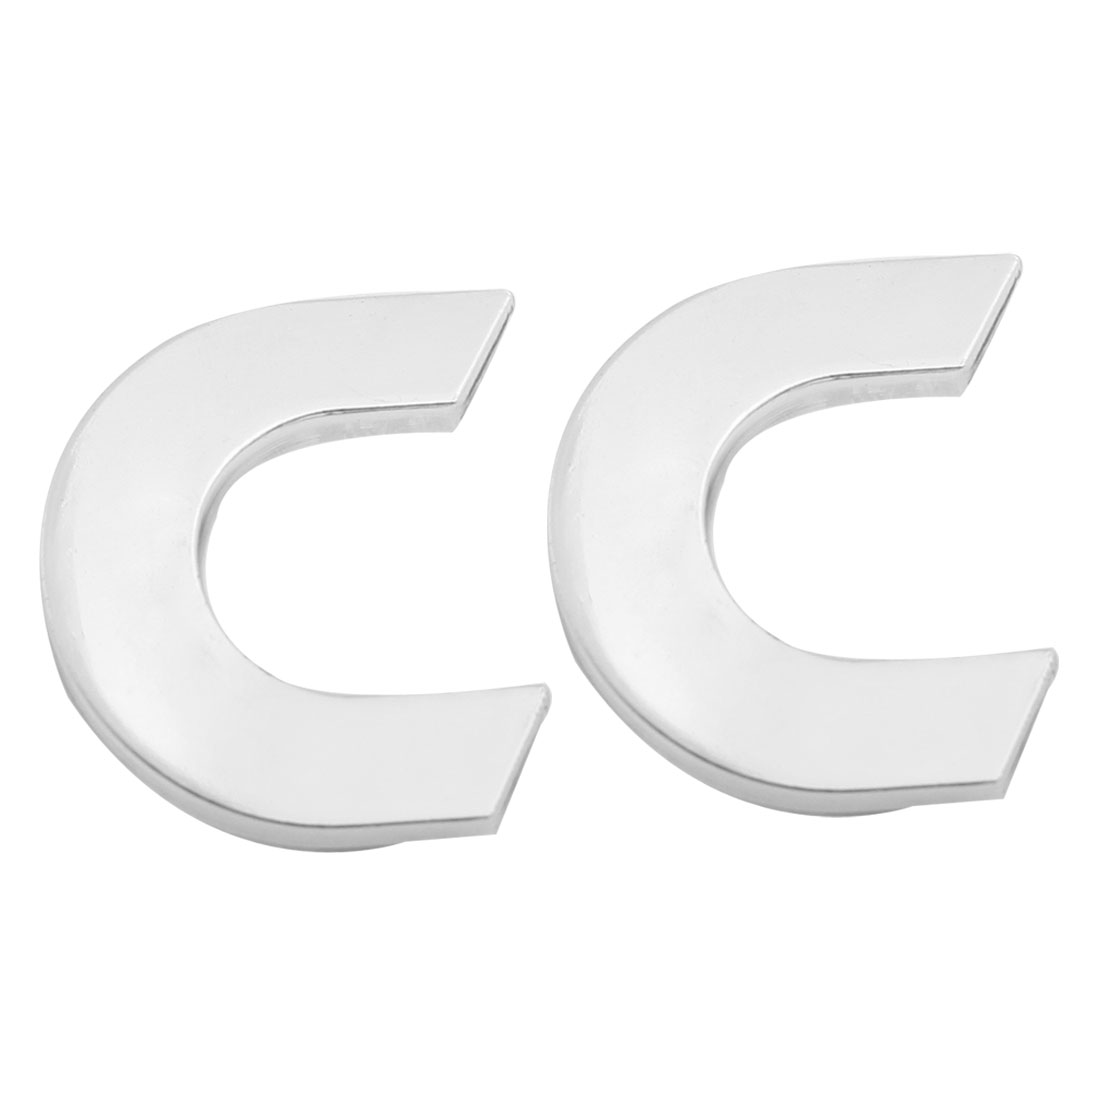 Car Vehicle Hood Trunk Letter C 3D Emblem Badge Sticker Silver Tone Pair